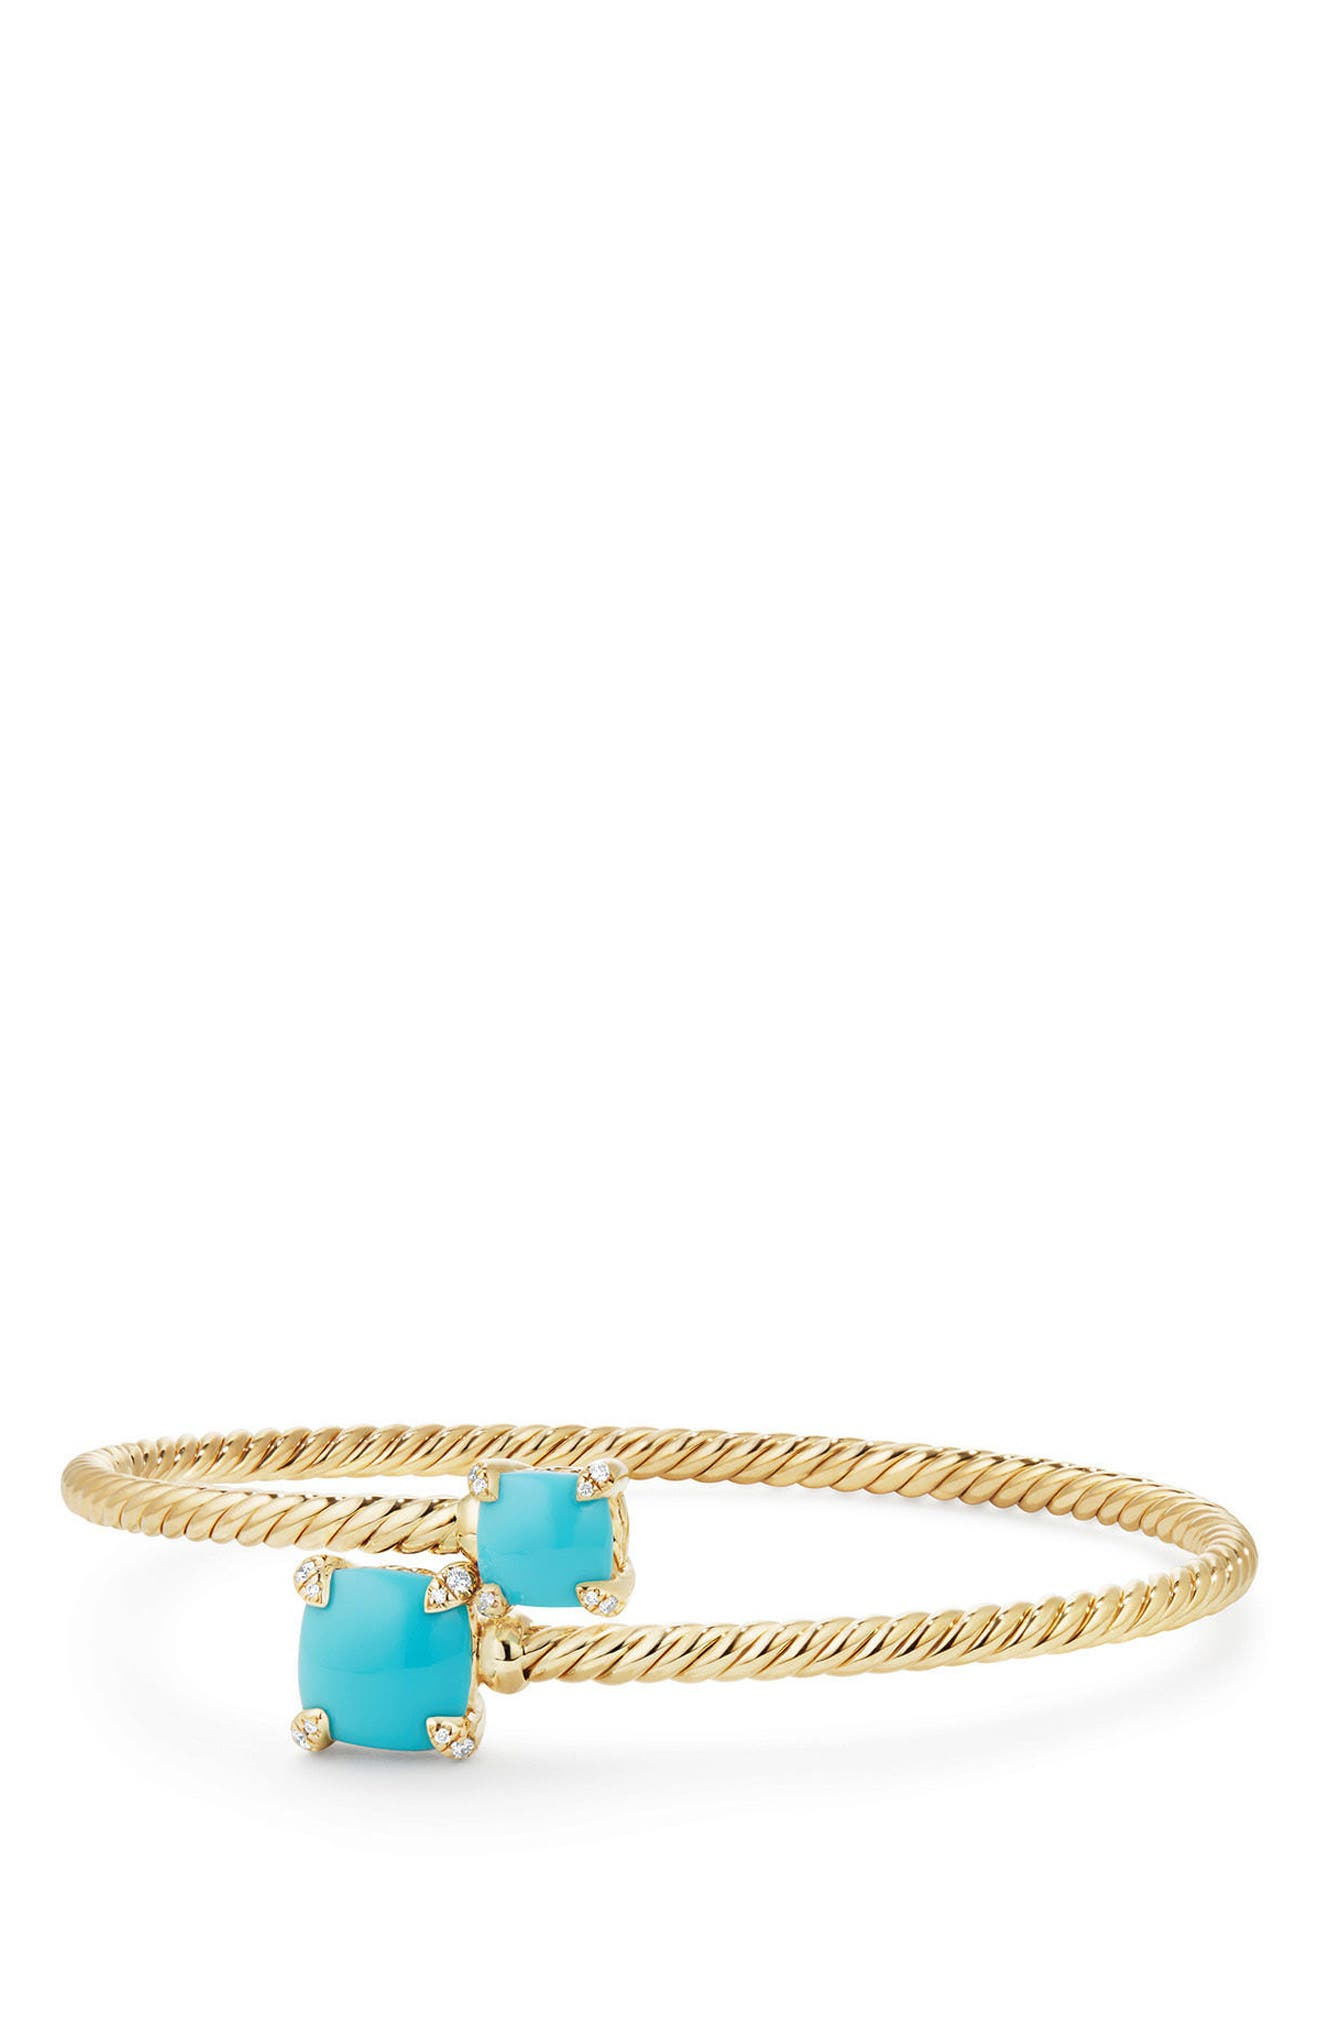 Châtelaine Bypass Bracelet with Semiprecious Stone & Diamonds in 18K Gold,                         Main,                         color, Turquoise